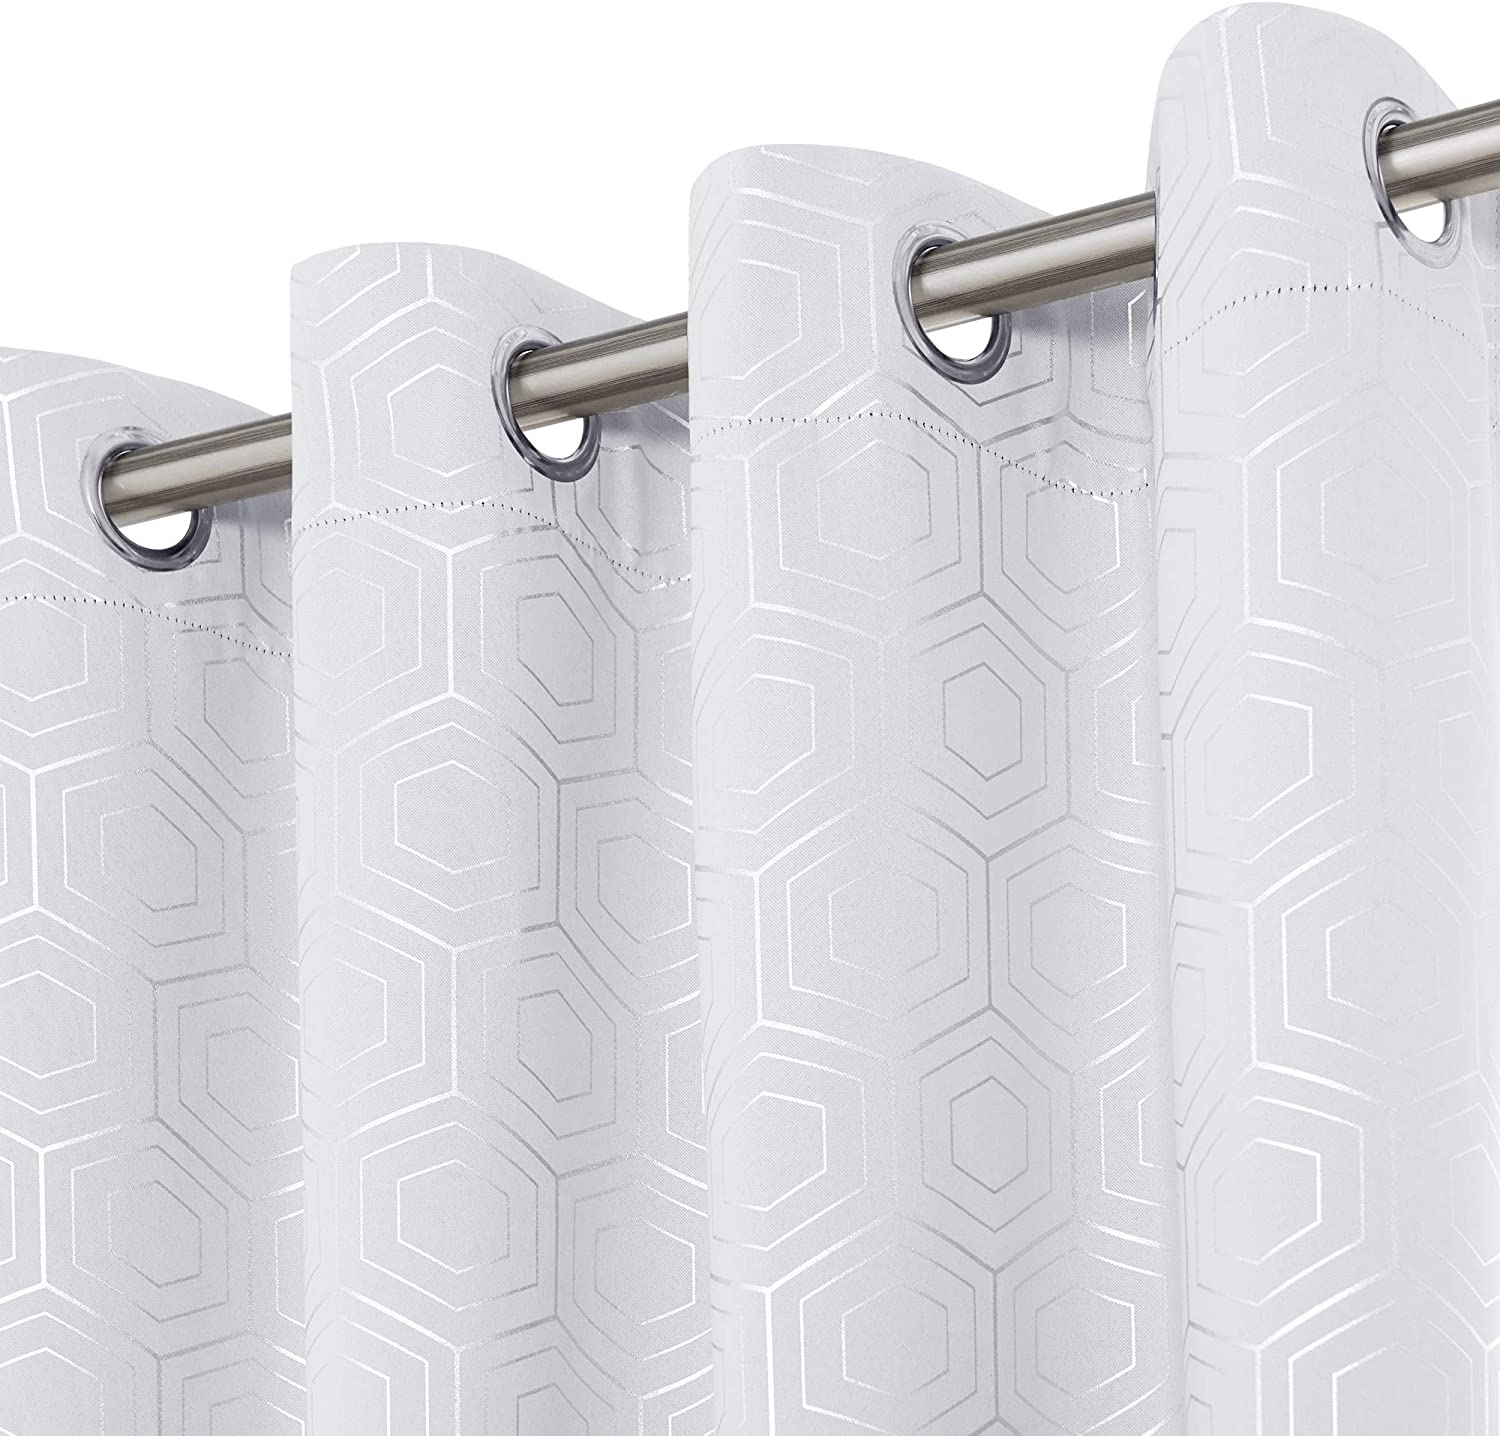 Deconovo Blackout Curtains Geometrical Pattern Thermal Insulated Noise Reducing White Grommet Curtains for Living Room and Dining Room Greyish White 52x63 Inch 2 Panels